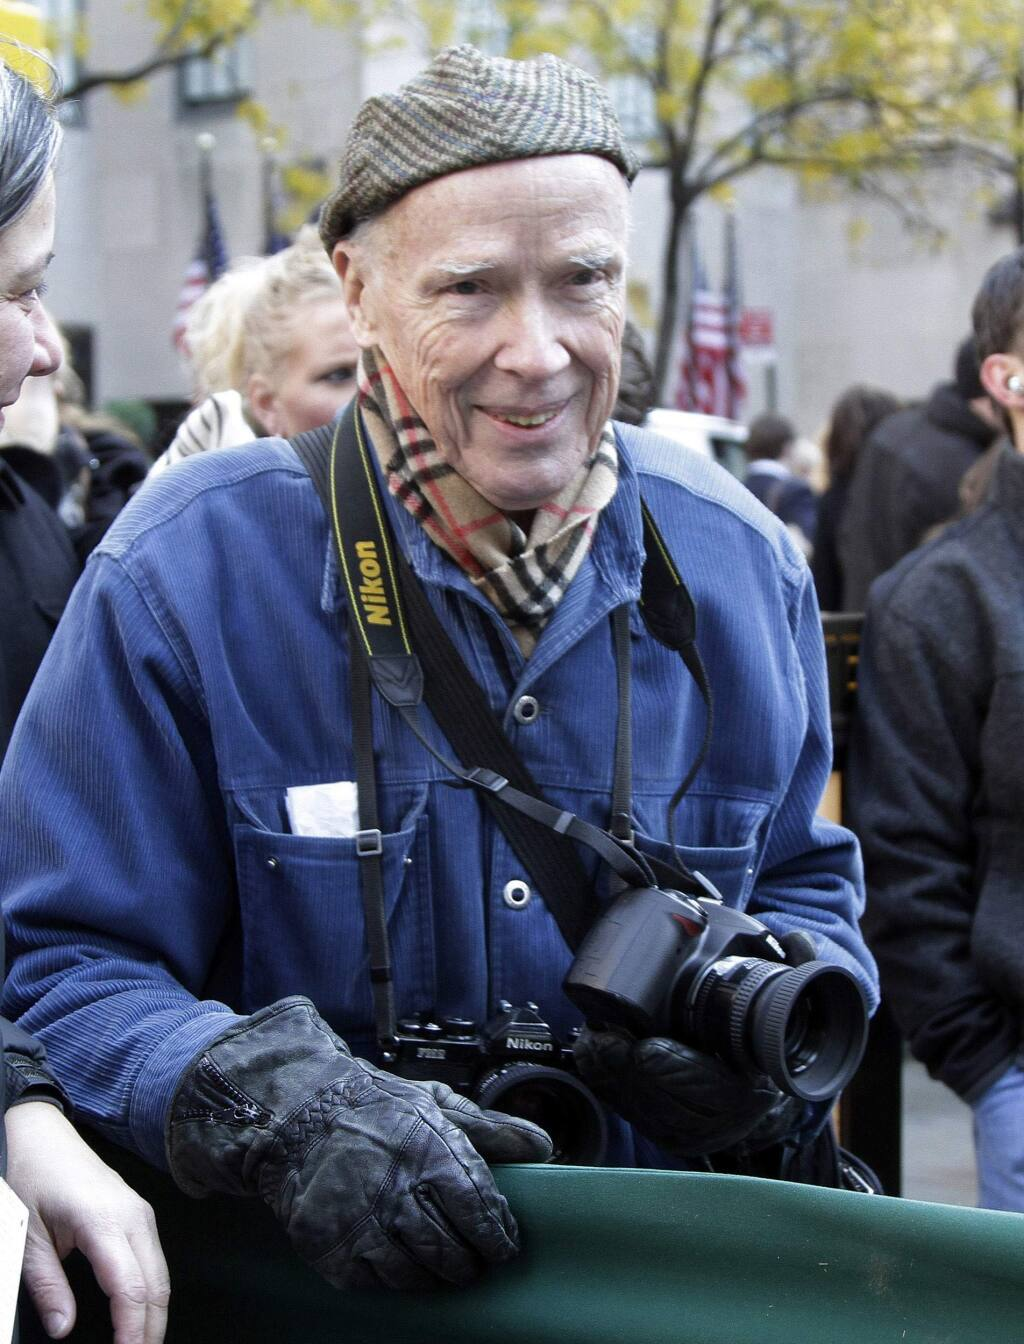 FILE - In this Nov. 11, 2011 file photo, New York Times photographer Bill Cunningham waits for the arrival of the annual Rockefeller Center Christmas tree, in New York. Cunningham, a longtime fashion photographer for The New York Times known for taking pictures of everyday people on the streets in New York died on Saturday, June 25, 2016, after suffering a stroke in New York. He was 87. (AP Photo/Richard Drew, File)